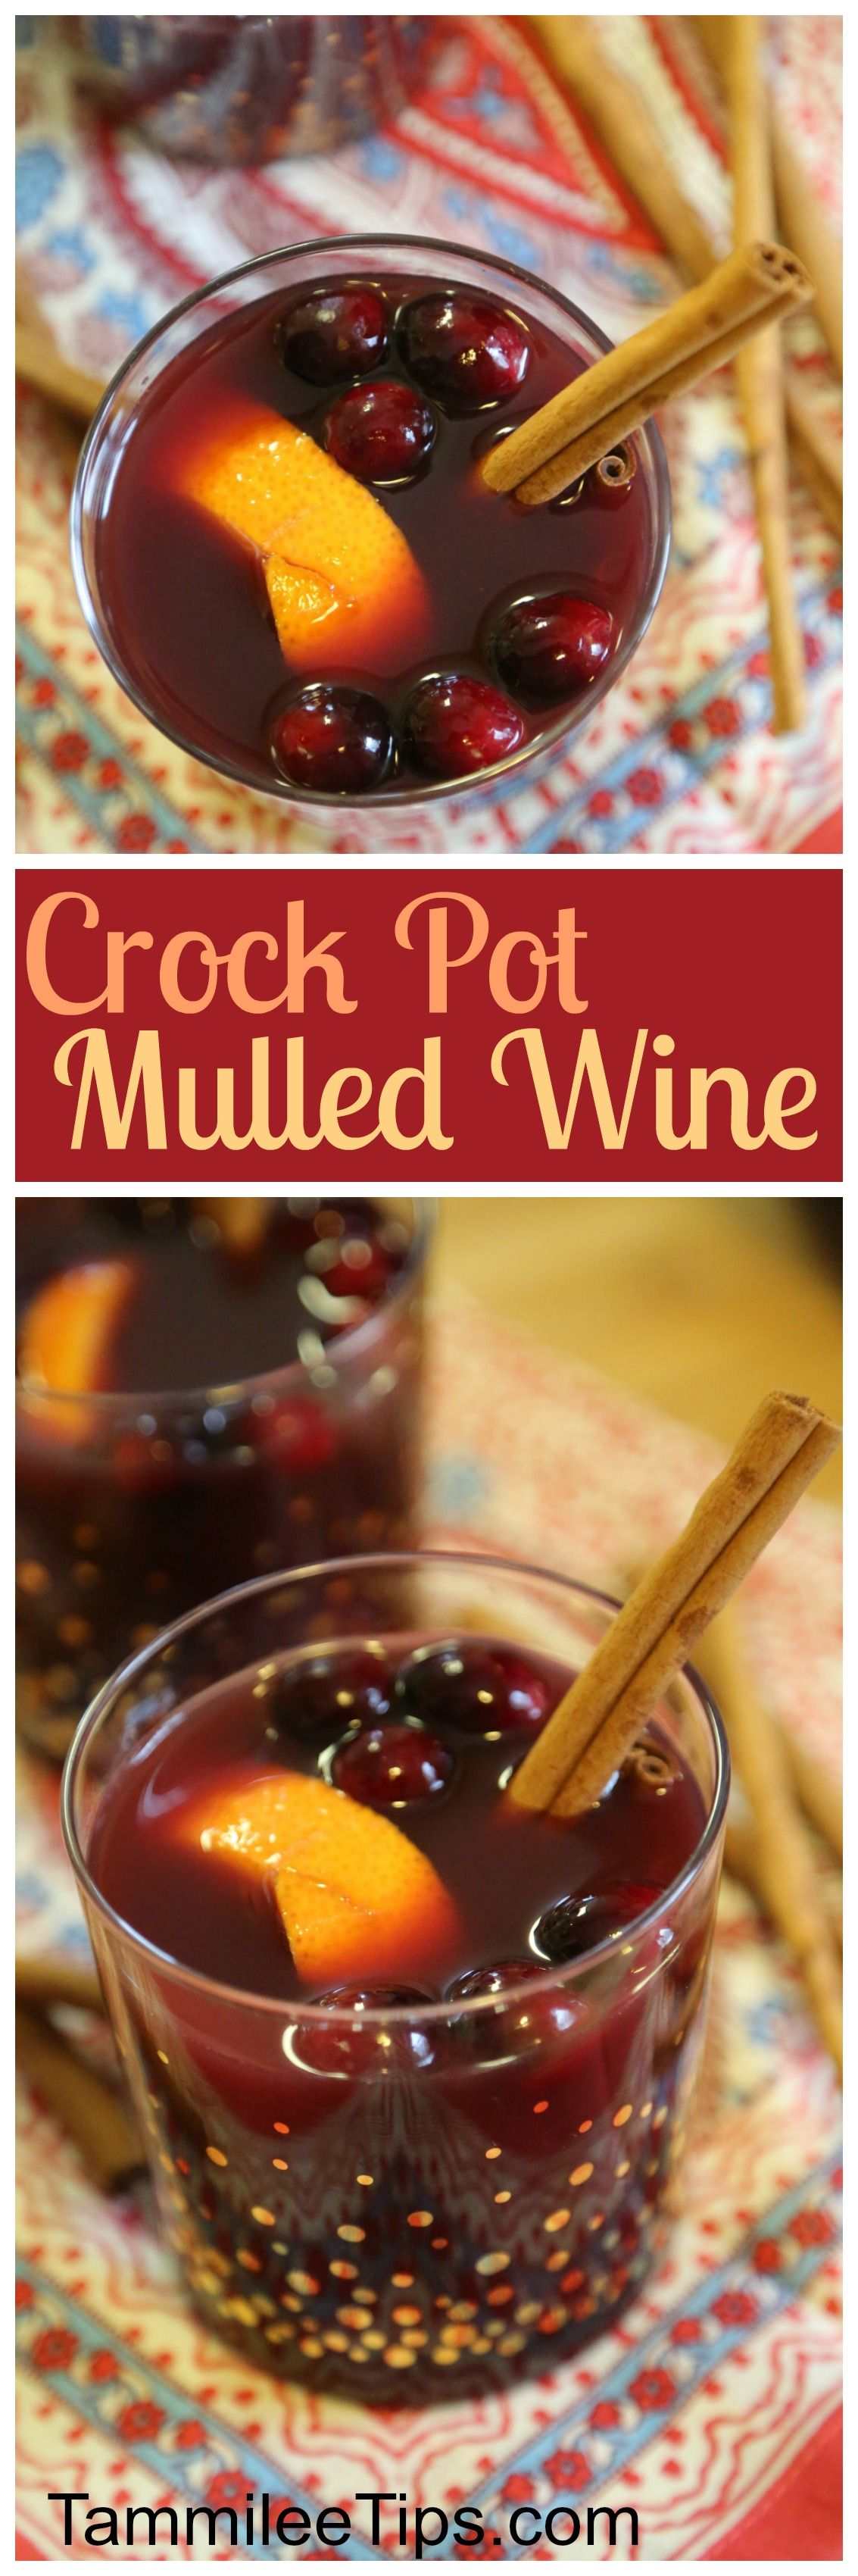 Super Easy Crock Pot Mulled Wine Recipe This Slow Cooker Hot Wine Cocktail Is Perfect For Parties Christmas Than Mulled Wine Recipe Wine Recipes Mulled Wine